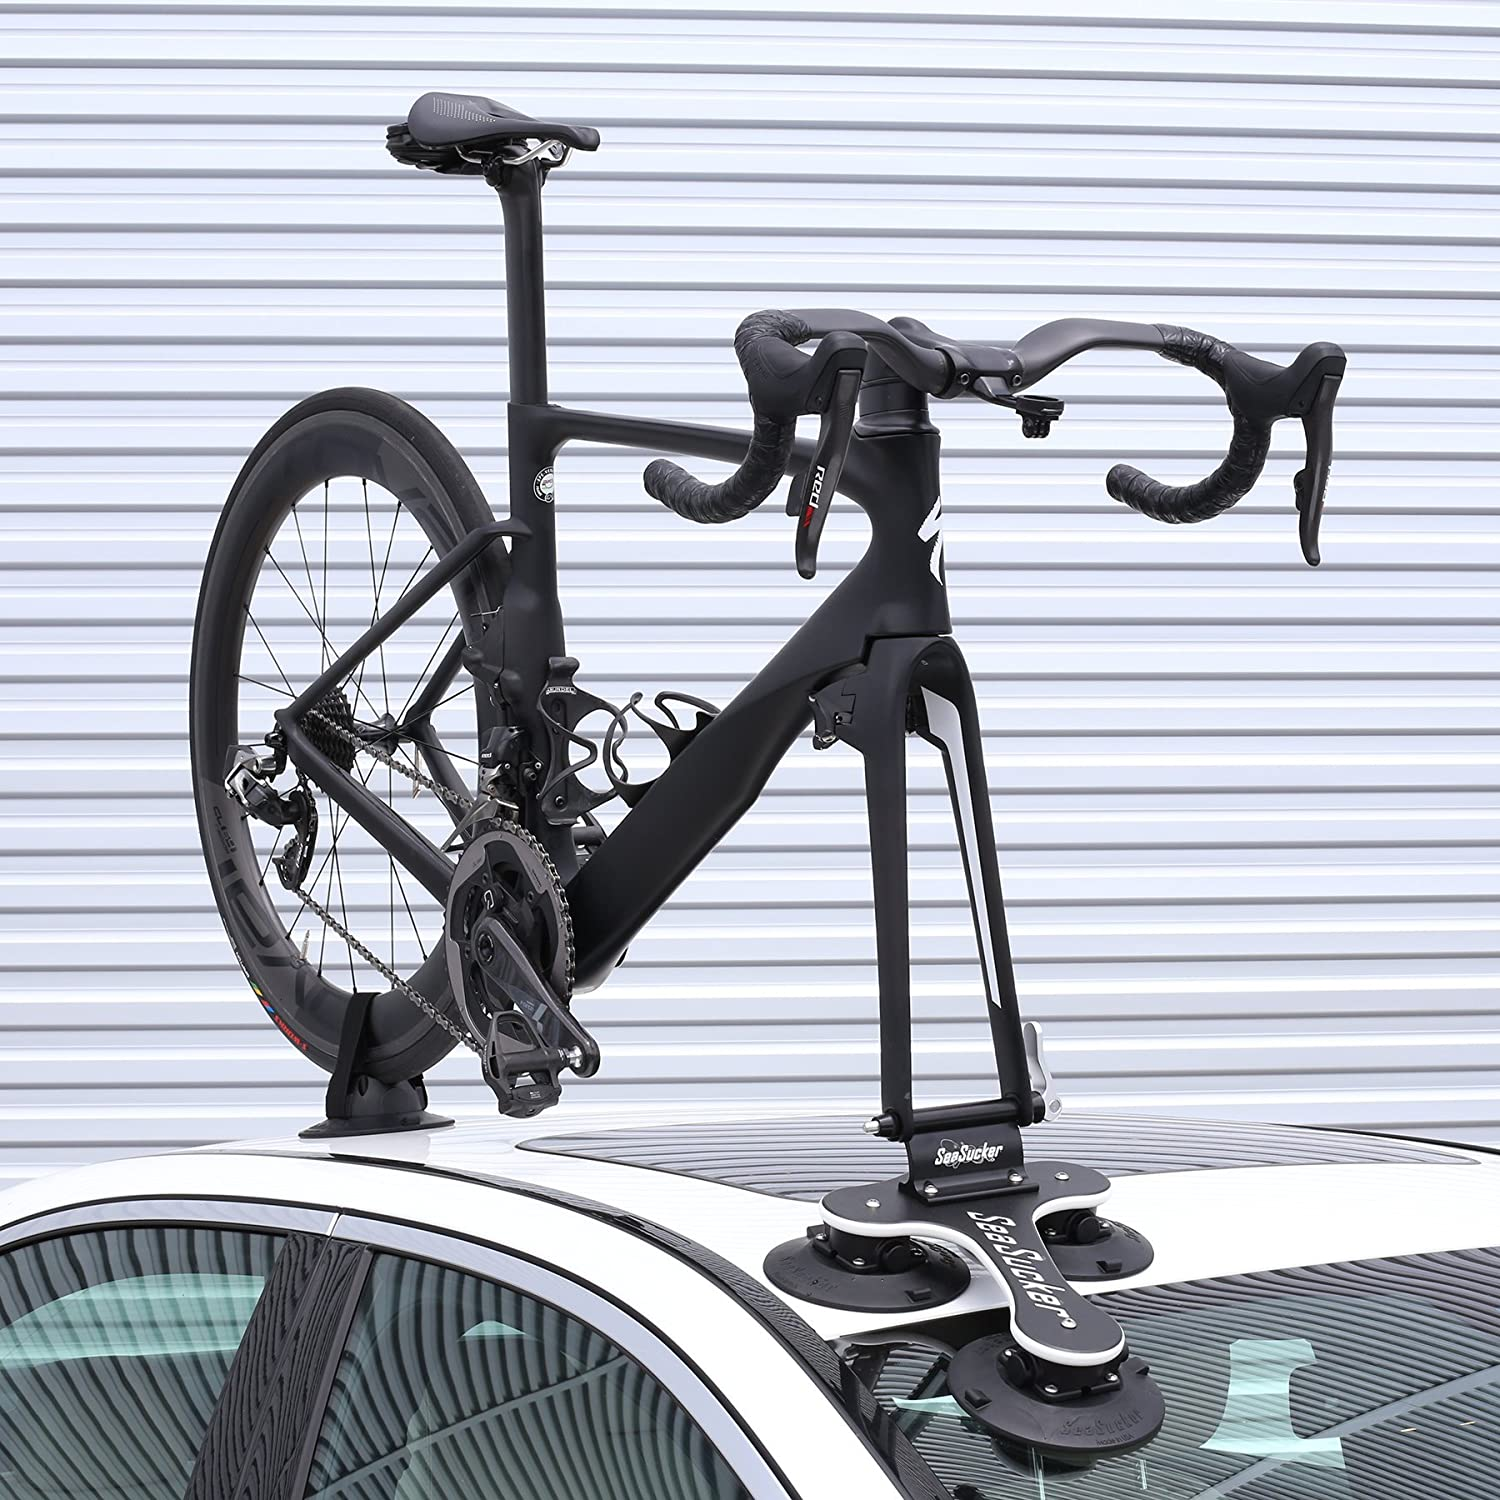 A bike on top of a car attached to a bike rack